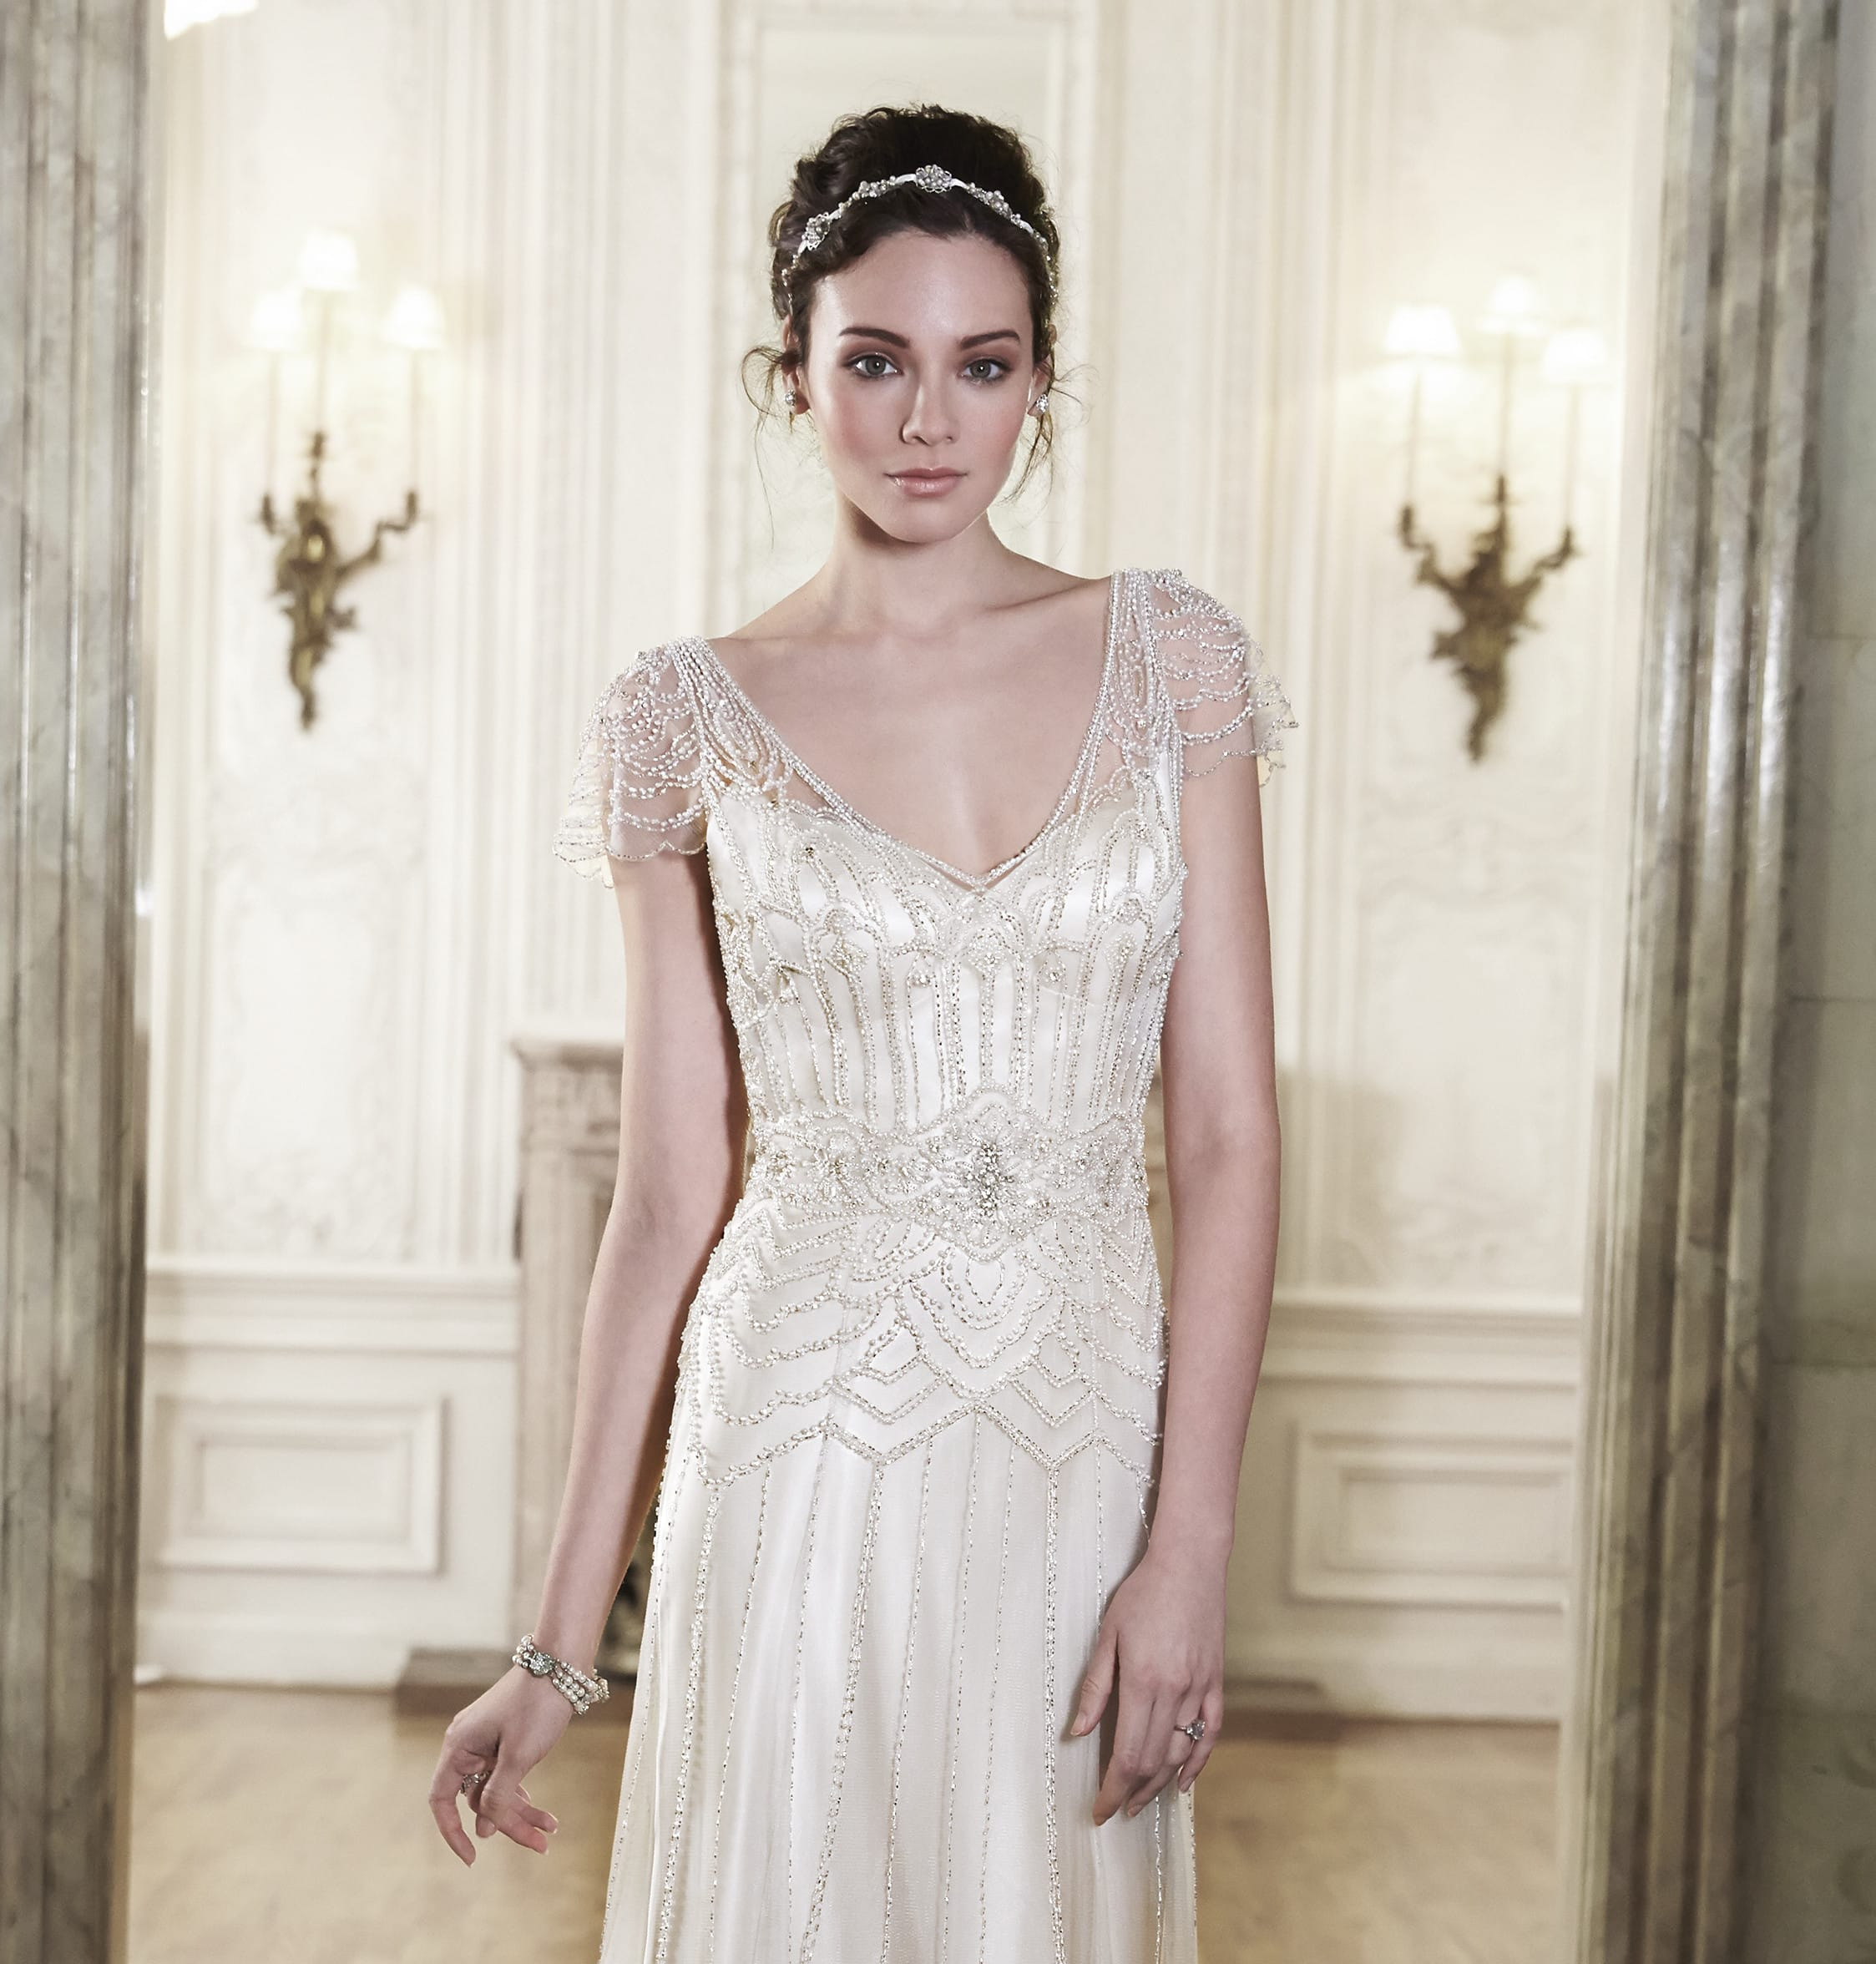 Vintage wedding dresses for The Great Gatsby Party - Ettia by Maggie Sottero